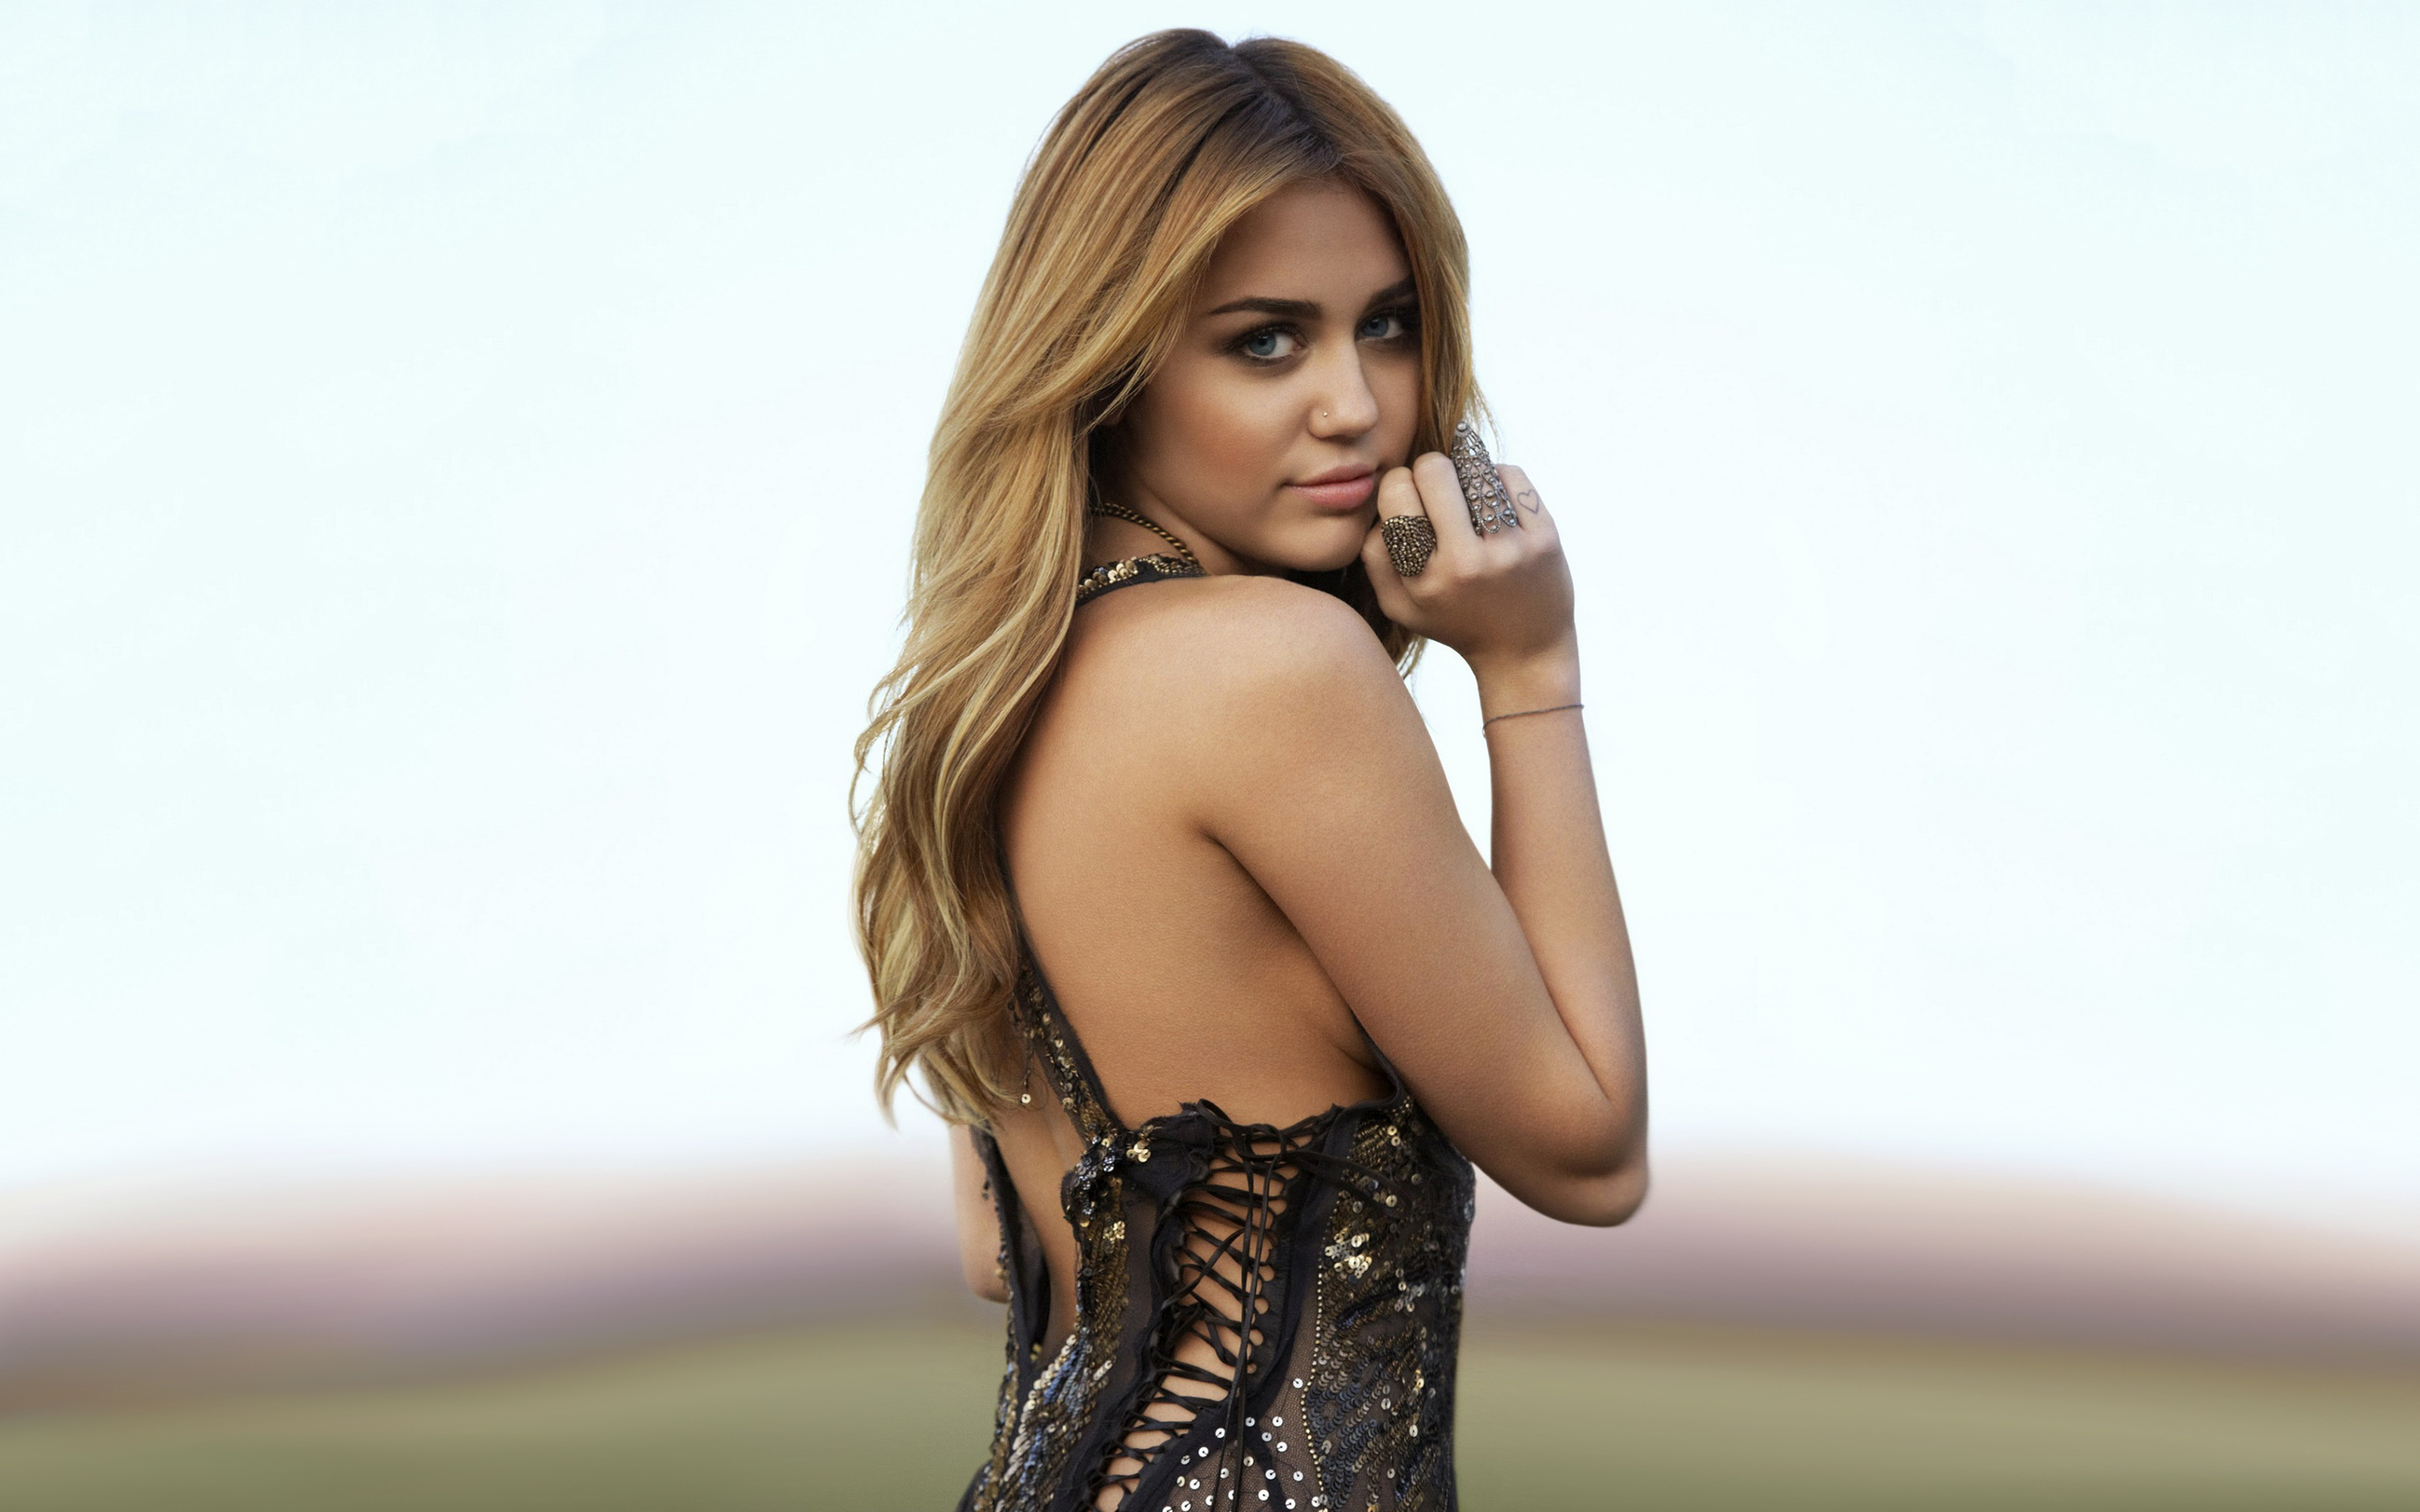 202 miley cyrus hd wallpapers | background images - wallpaper abyss